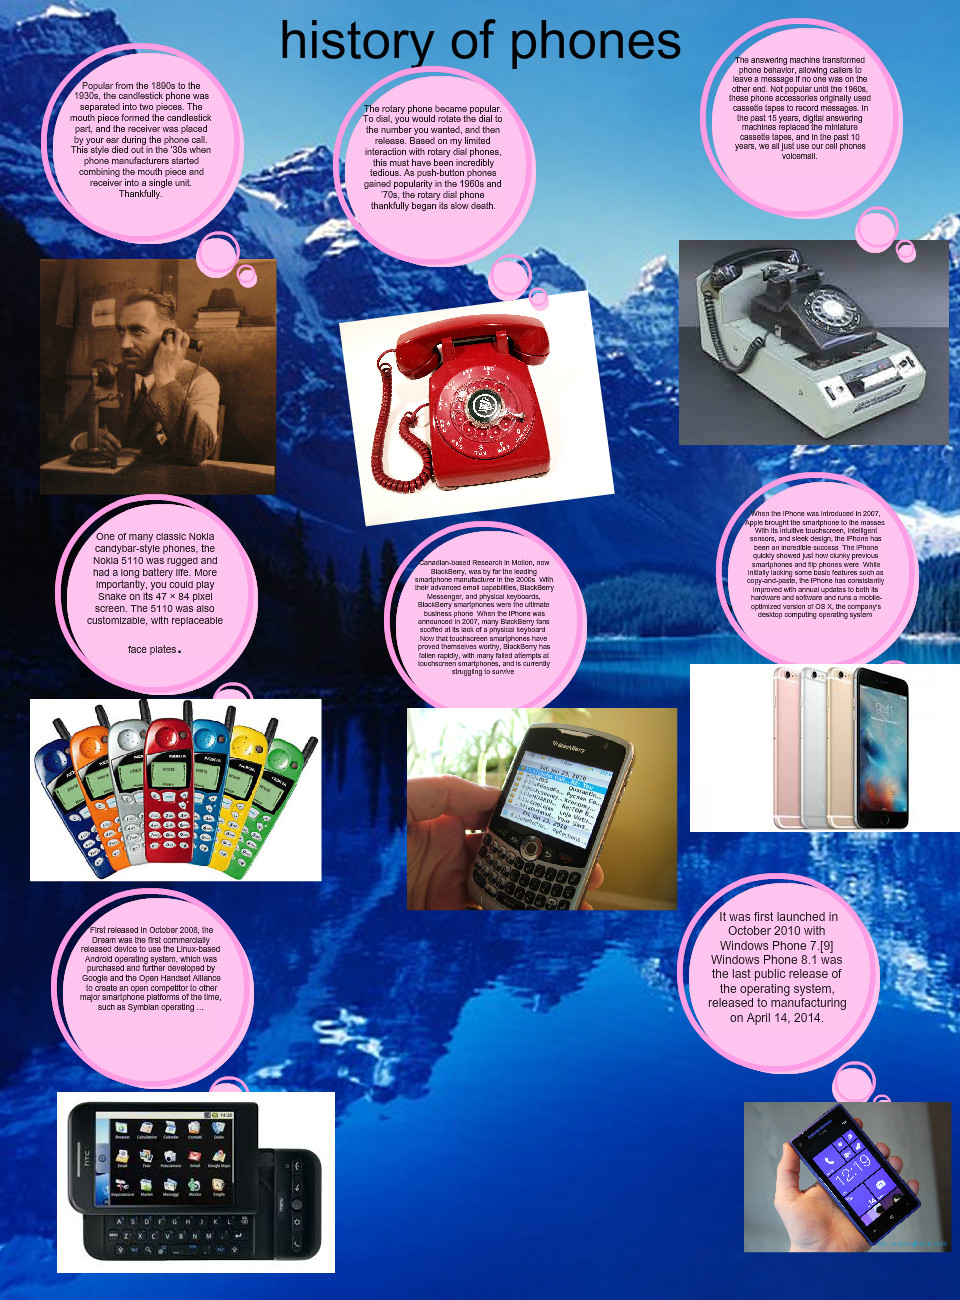 [2016] Guy Flores: History of phones